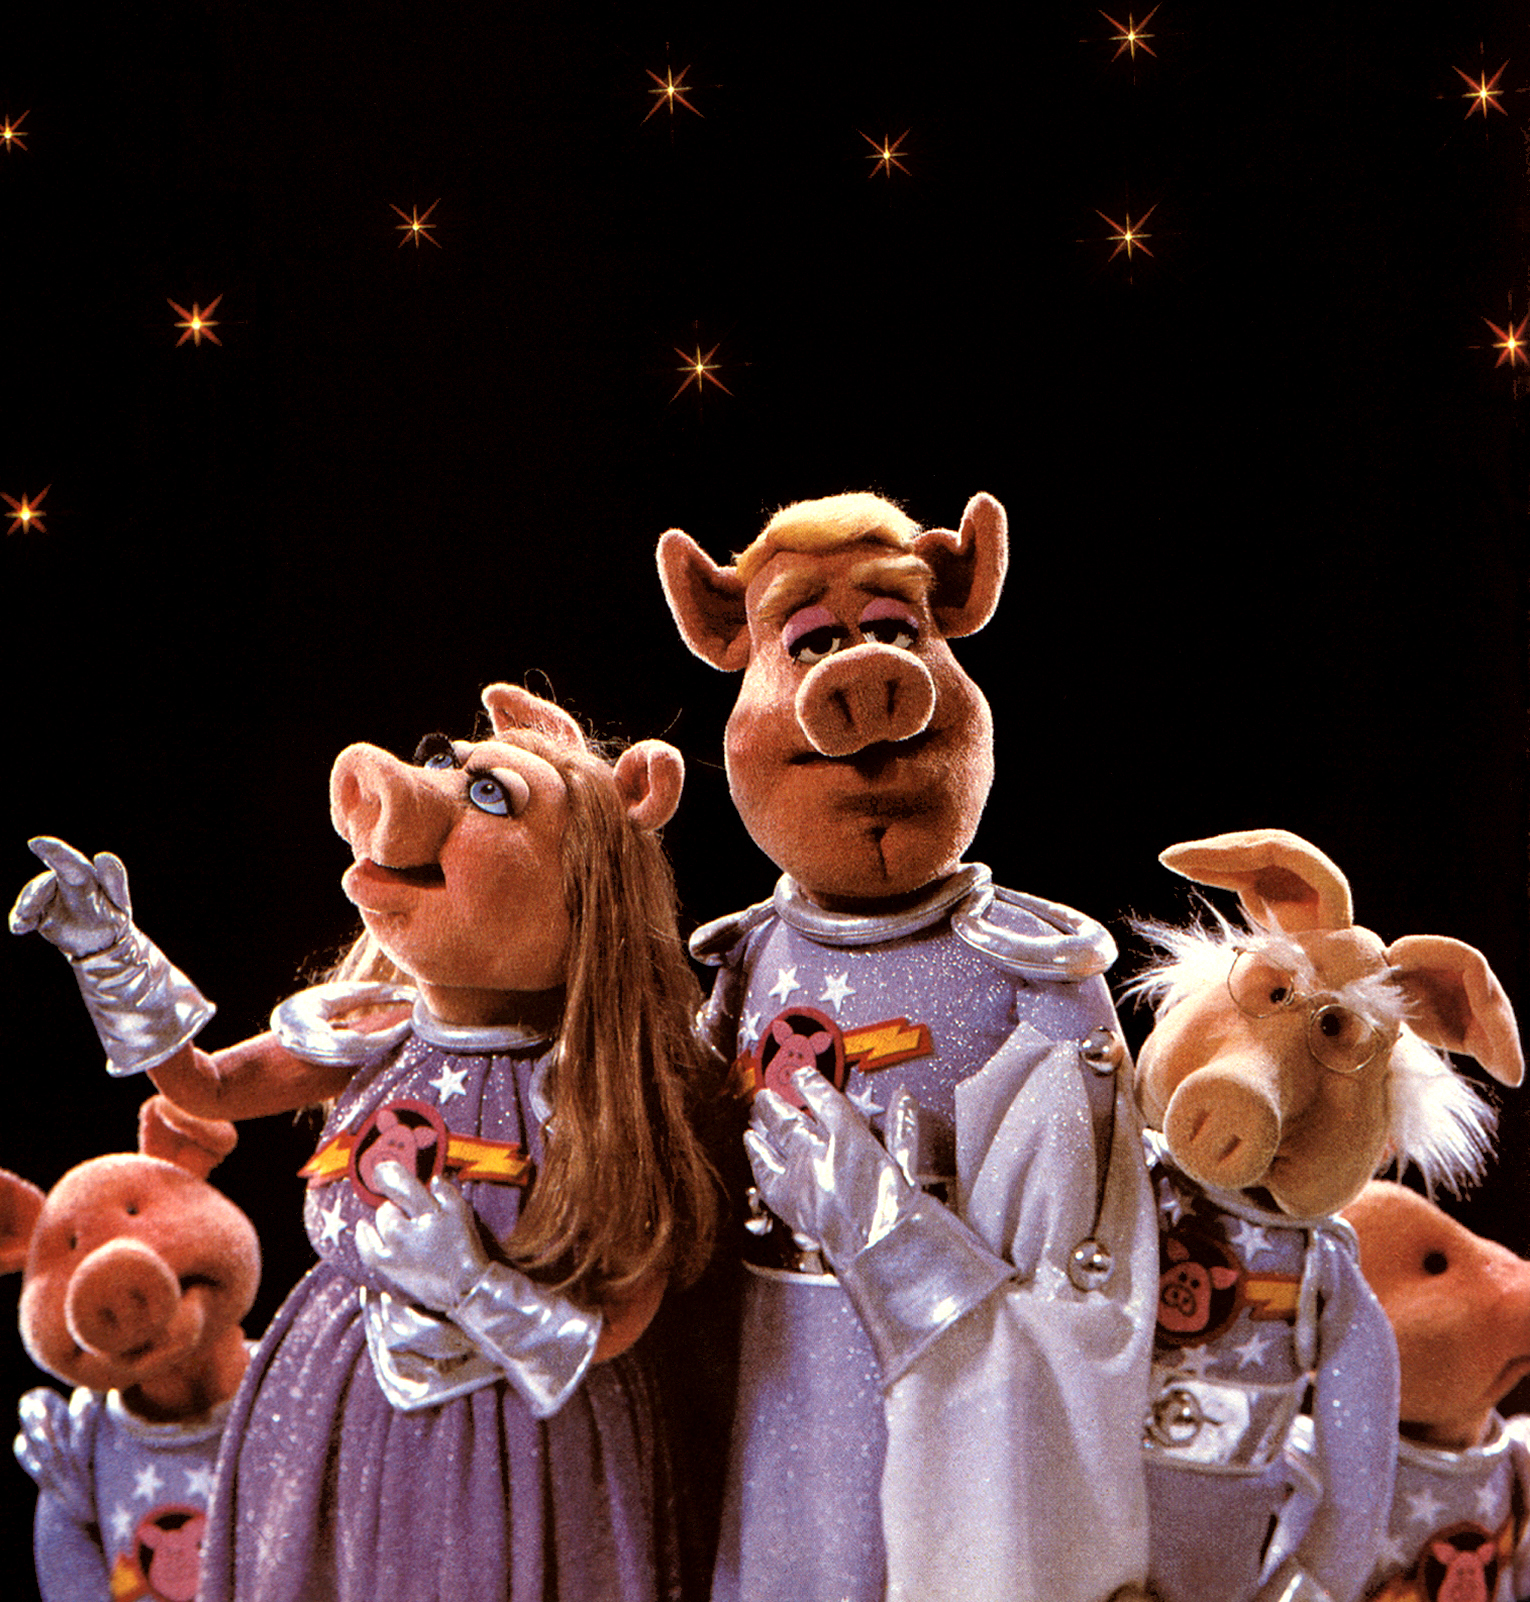 Harry Potter Muppets: Pigs In Space Getting New Episodes From The Muppets